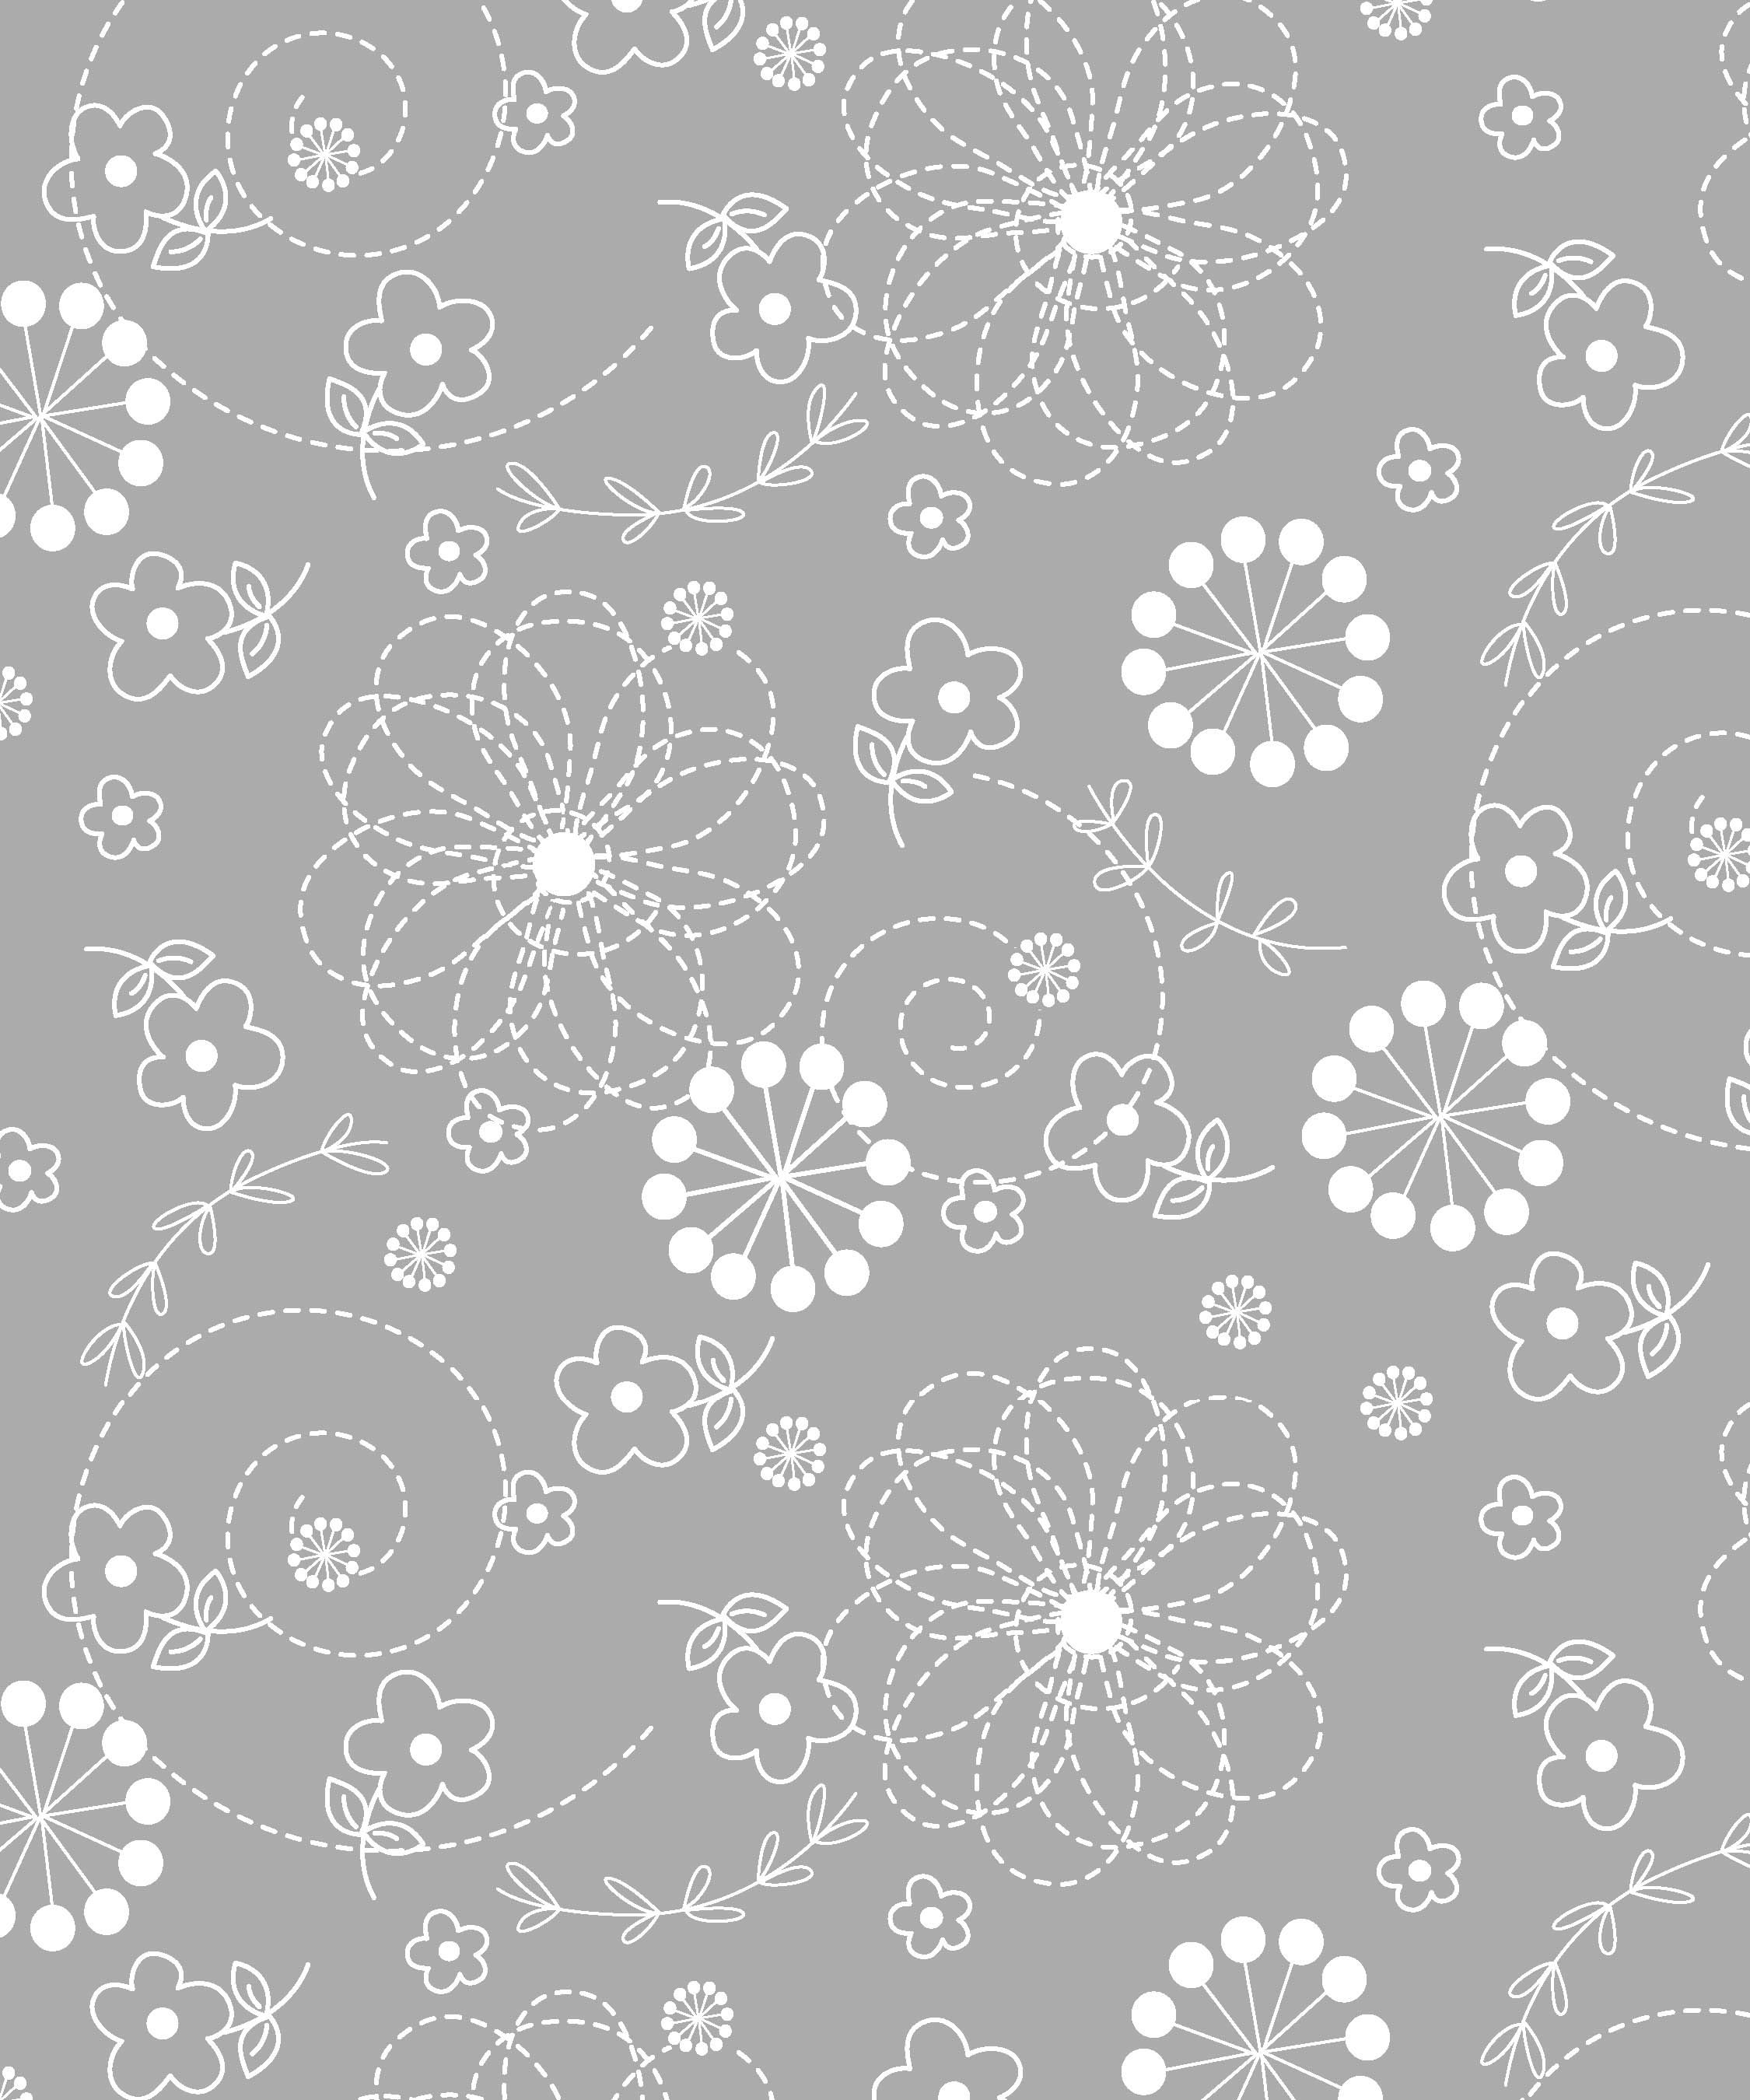 Maywood Studio Lil Sprout Too Flannel Doodles Gray